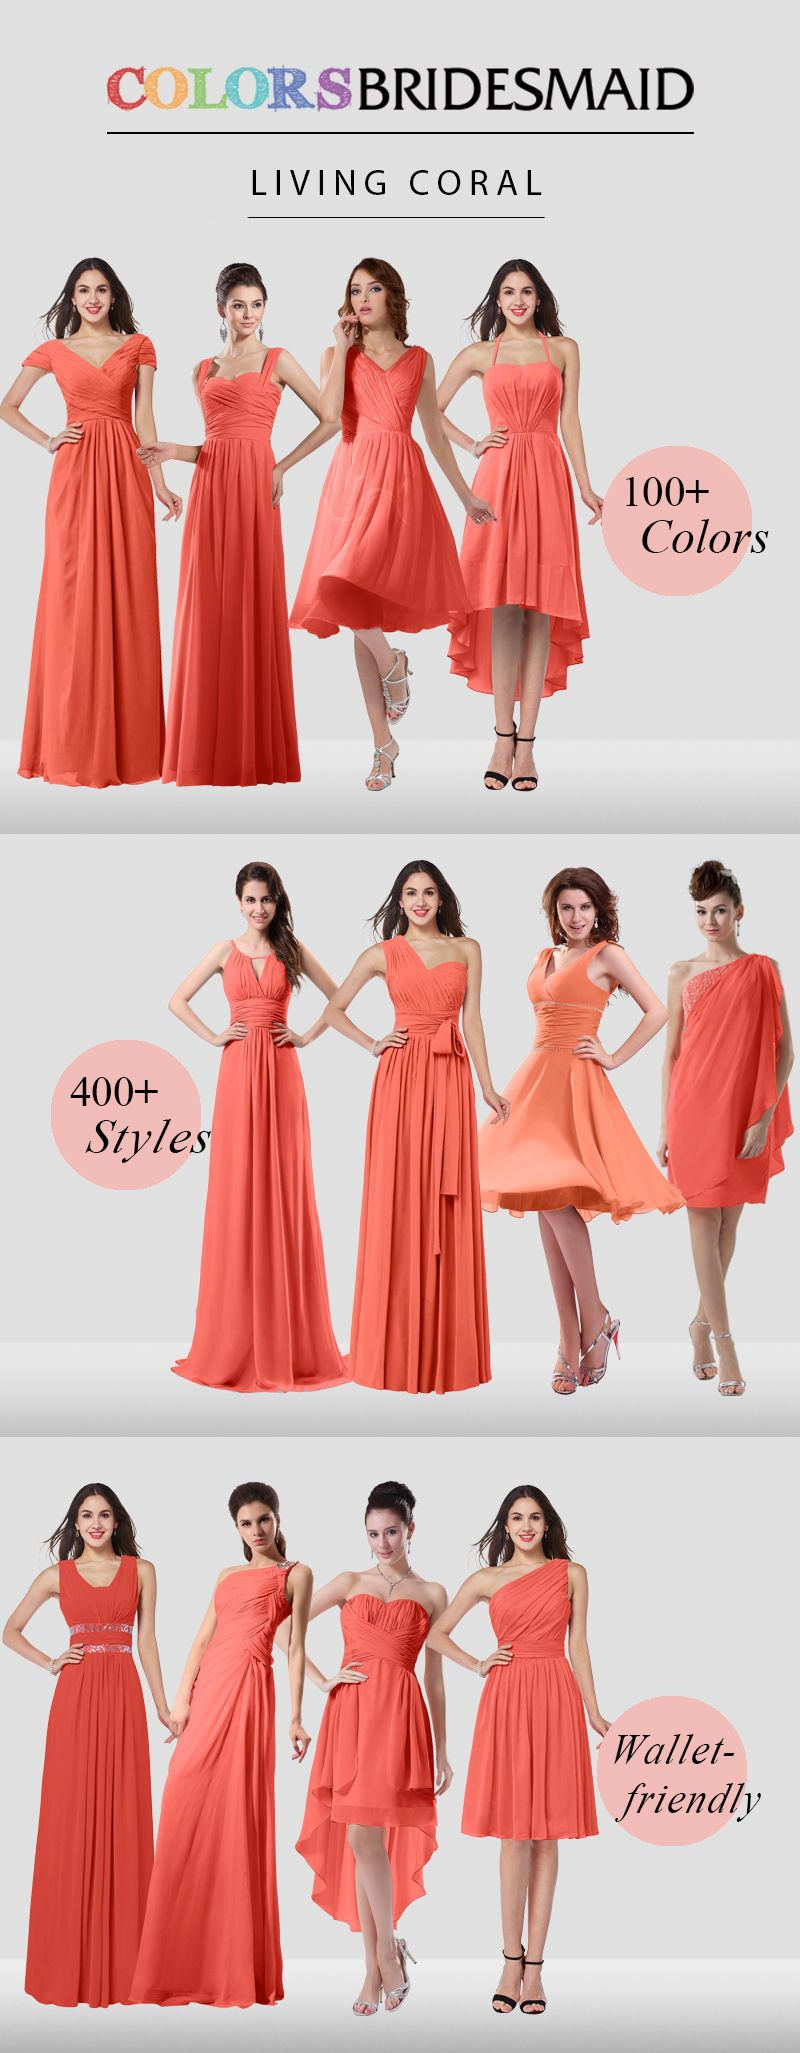 Red Bridesmaid Dresses Living Coral Color Coral Bridesmaid Dresses Wedding Dresses Bridesmaid Dresses